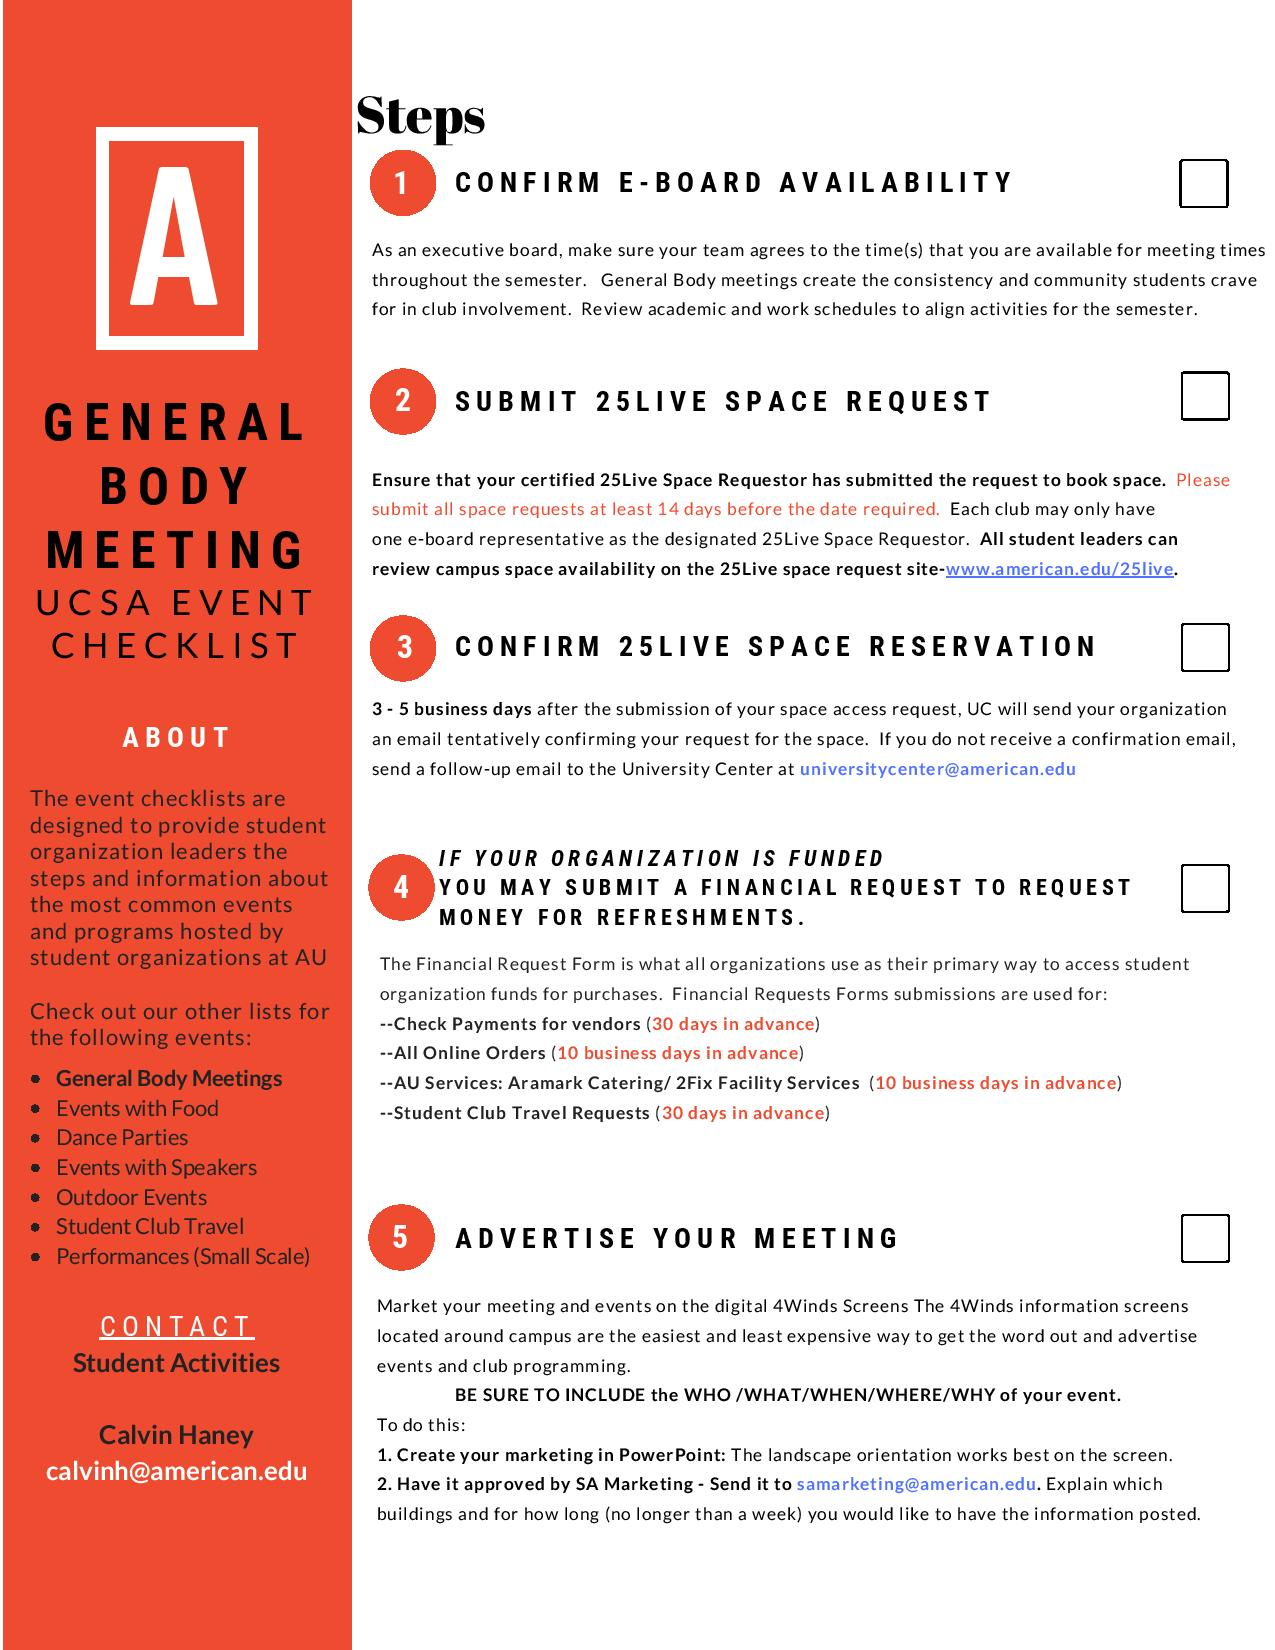 General Body Meeting Checklist